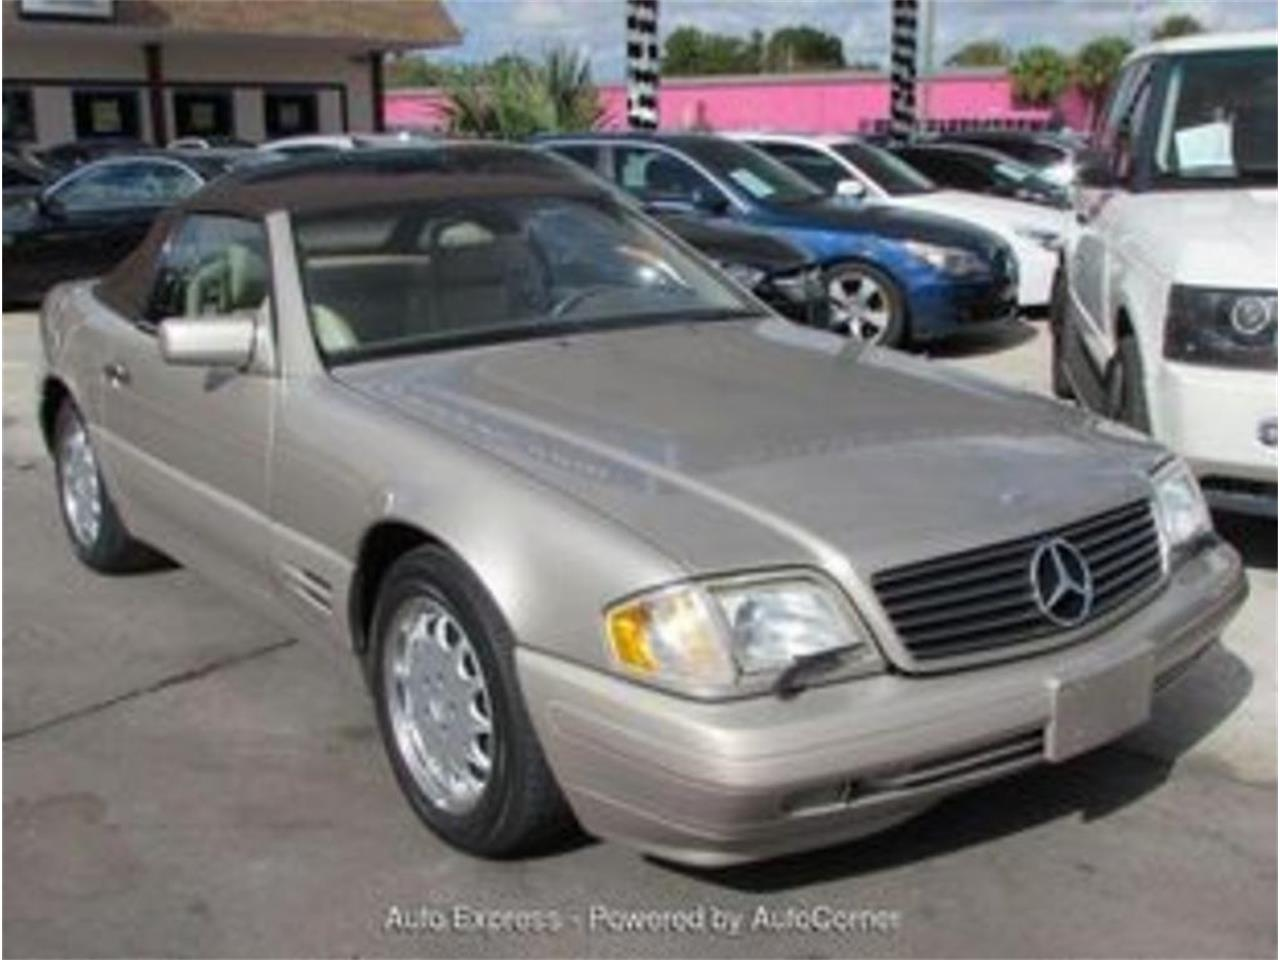 Large Picture of 1997 Mercedes-Benz SL-Class - $7,500.00 Offered by Auto Express - Q2BK